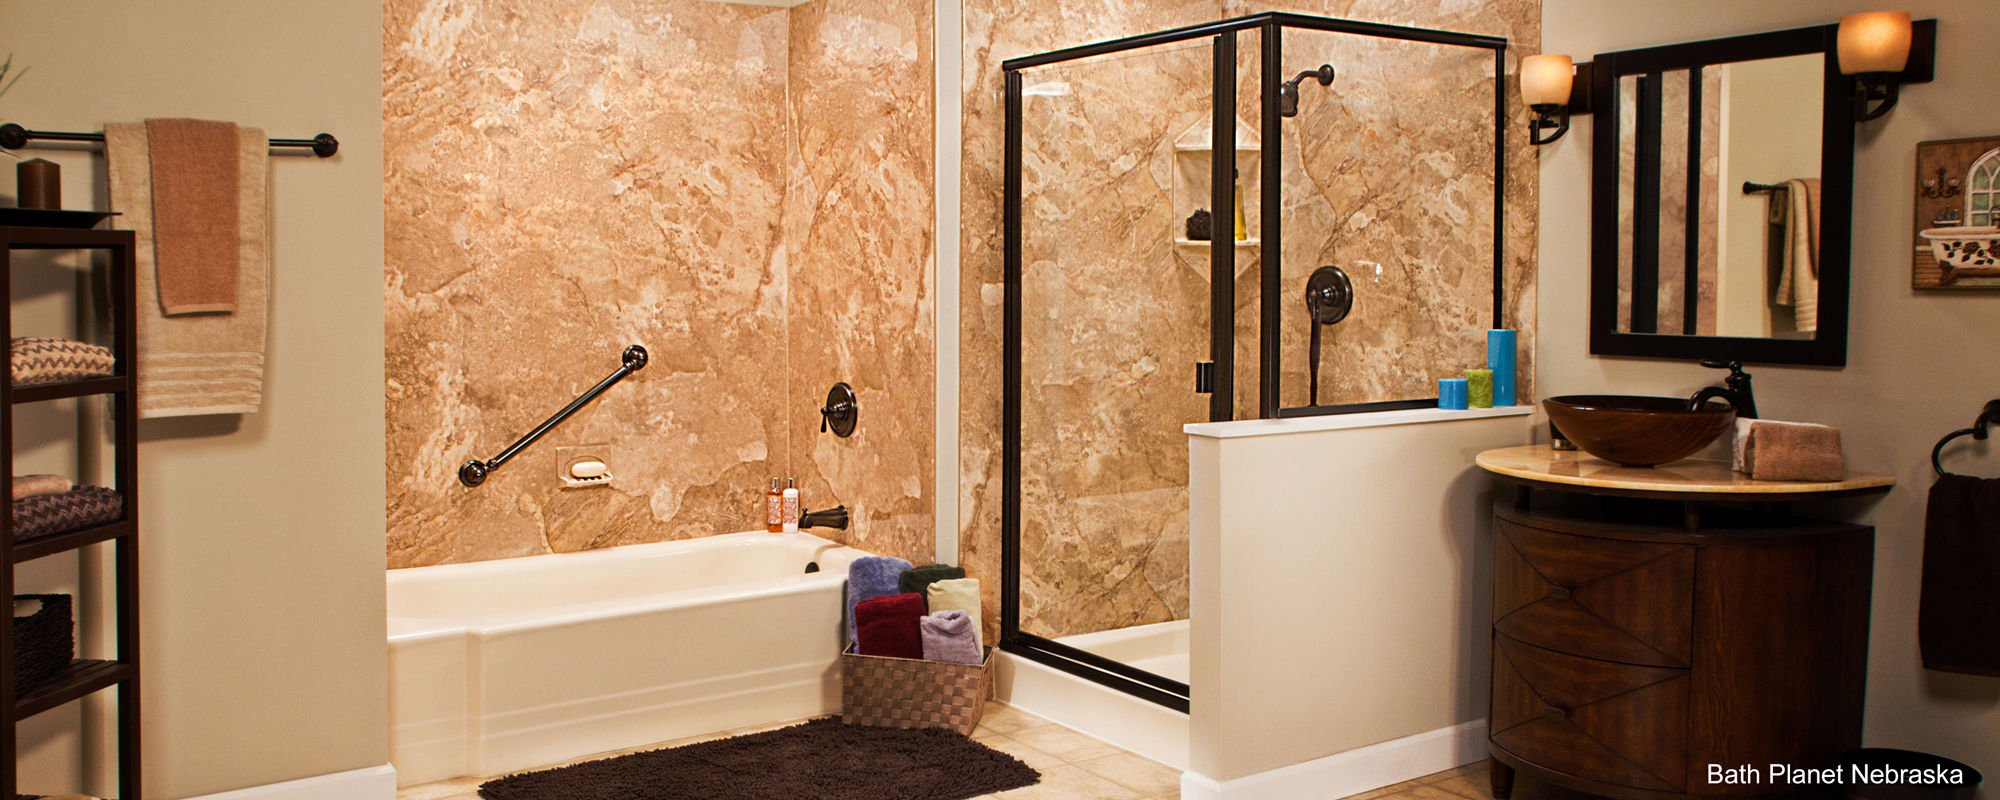 Bathroom Remodels Omaha 2017 omaha home show - april 7-9 - centurylink center omaha